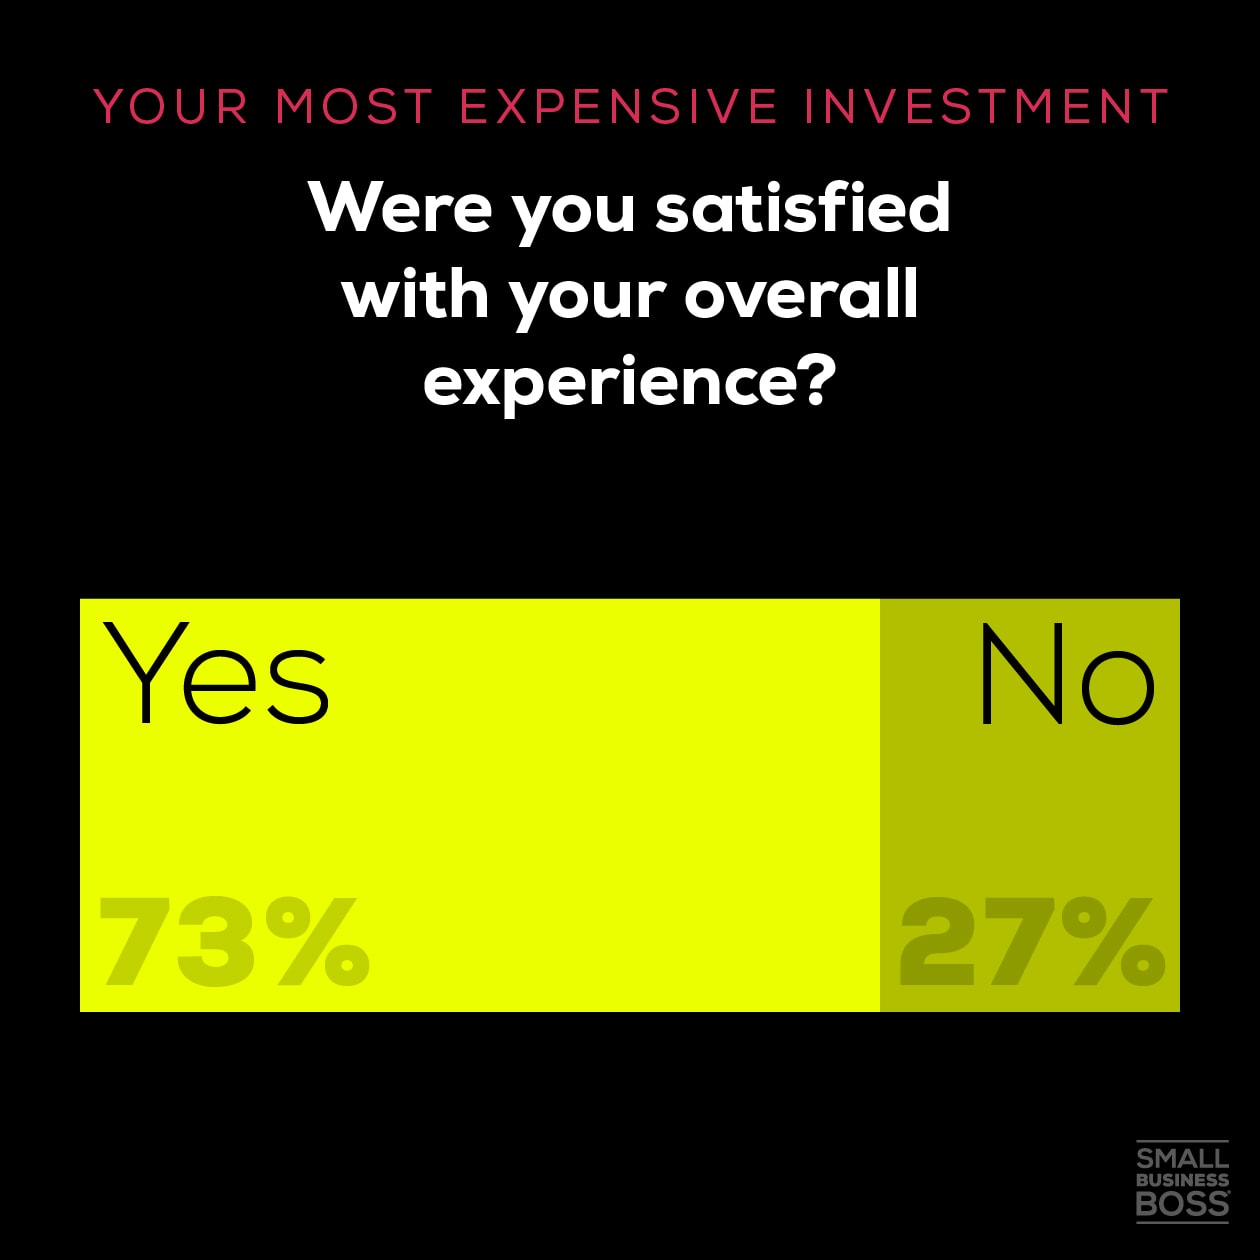 Most expensive investment-satisfied